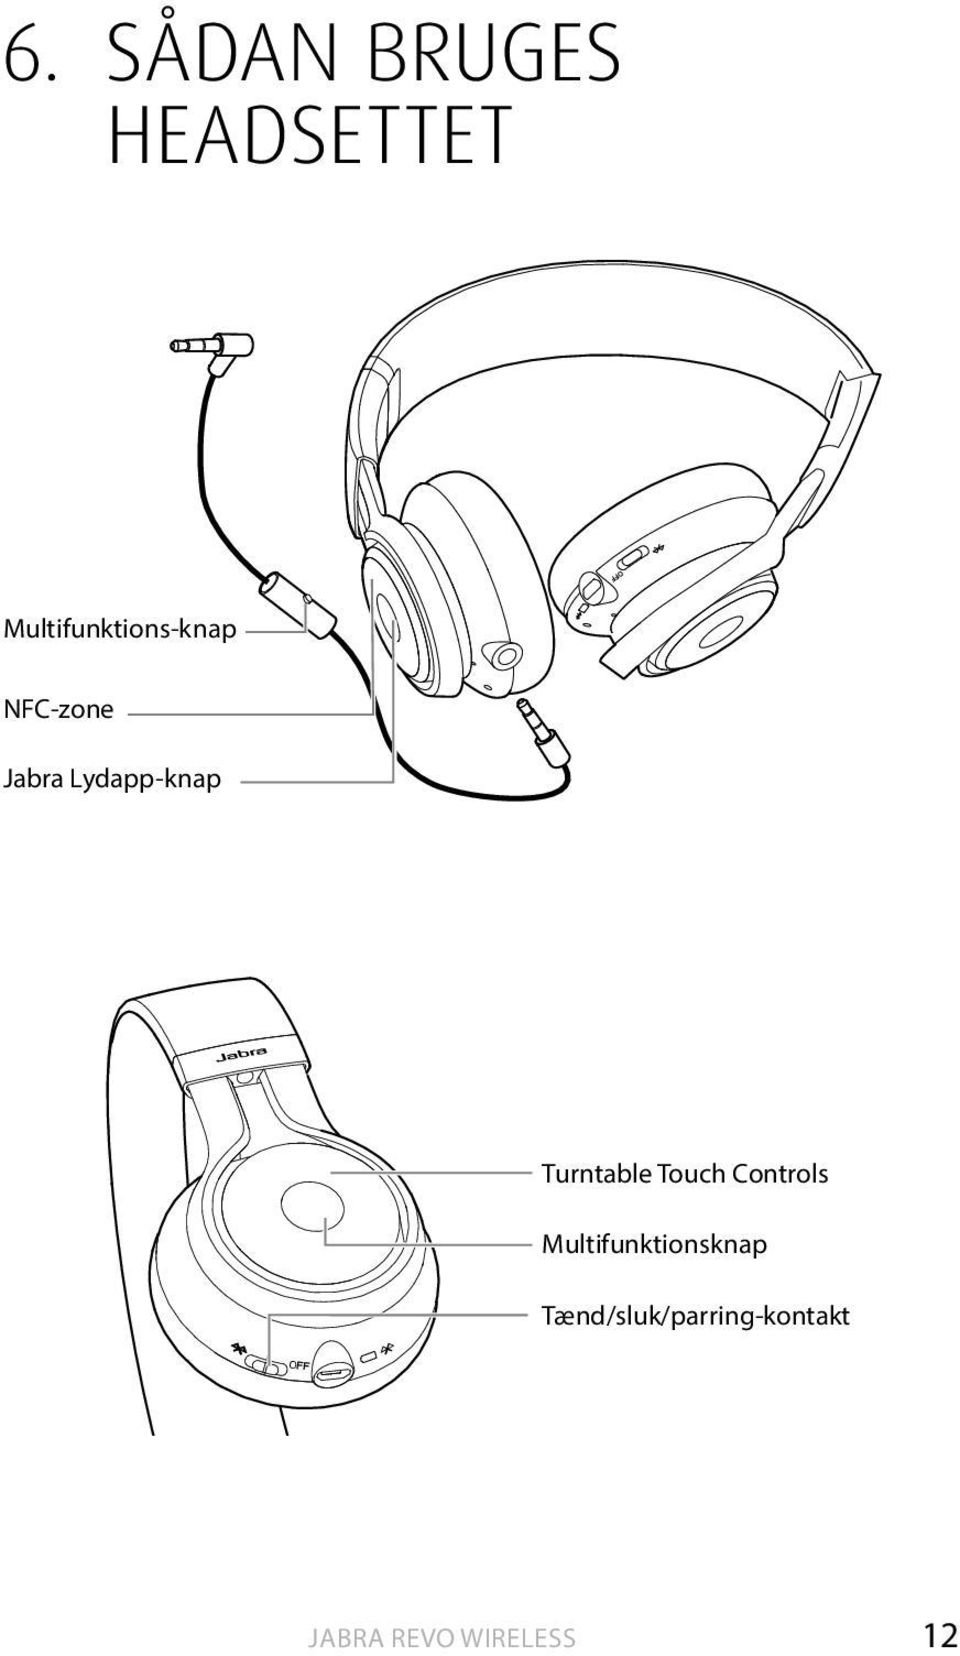 Multifunktions-knap NFC-zone Jabra